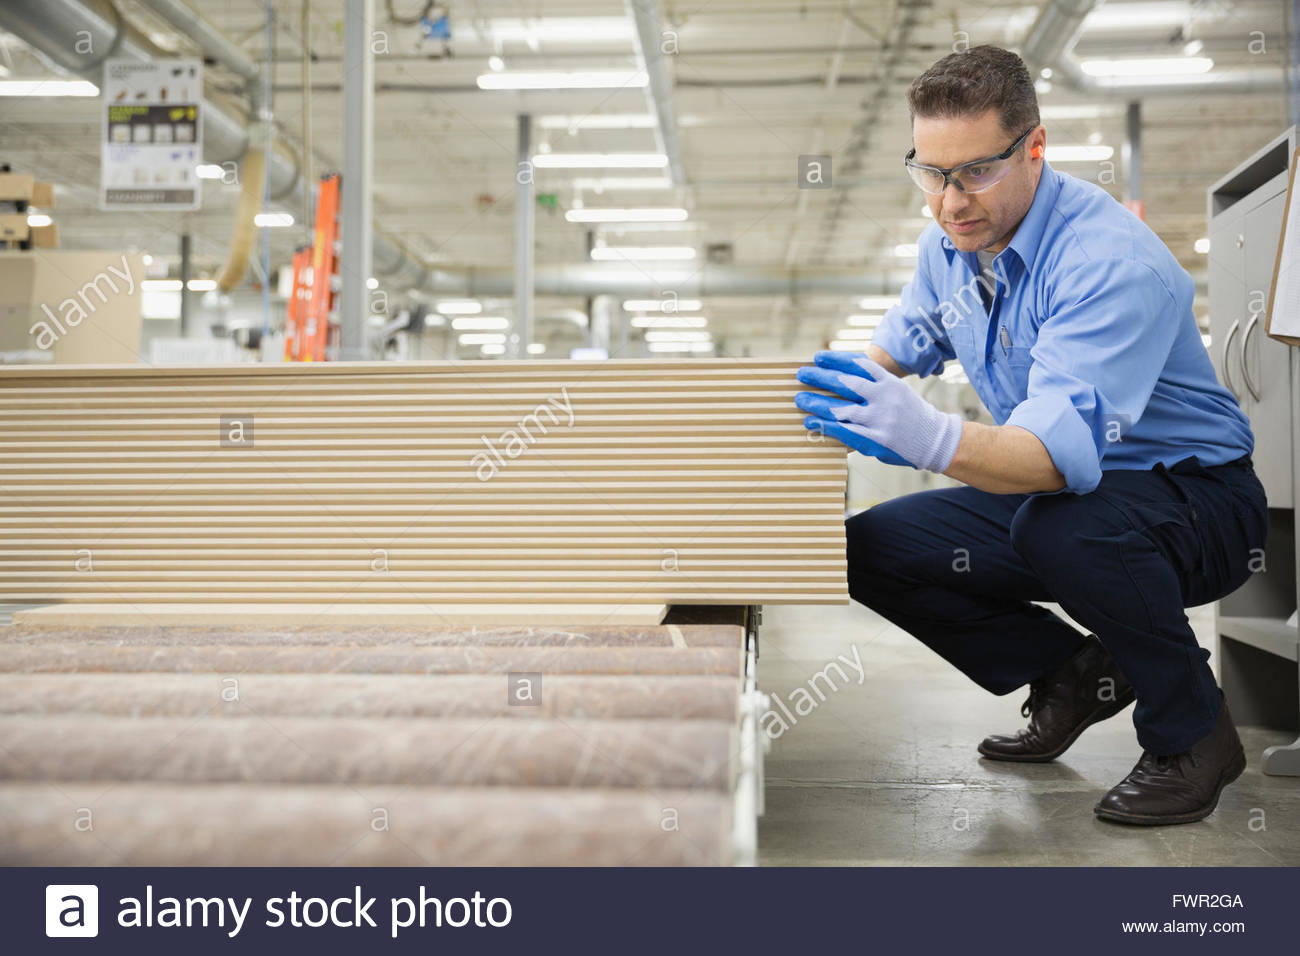 Worker examining wooden planks in factory - Stock Image